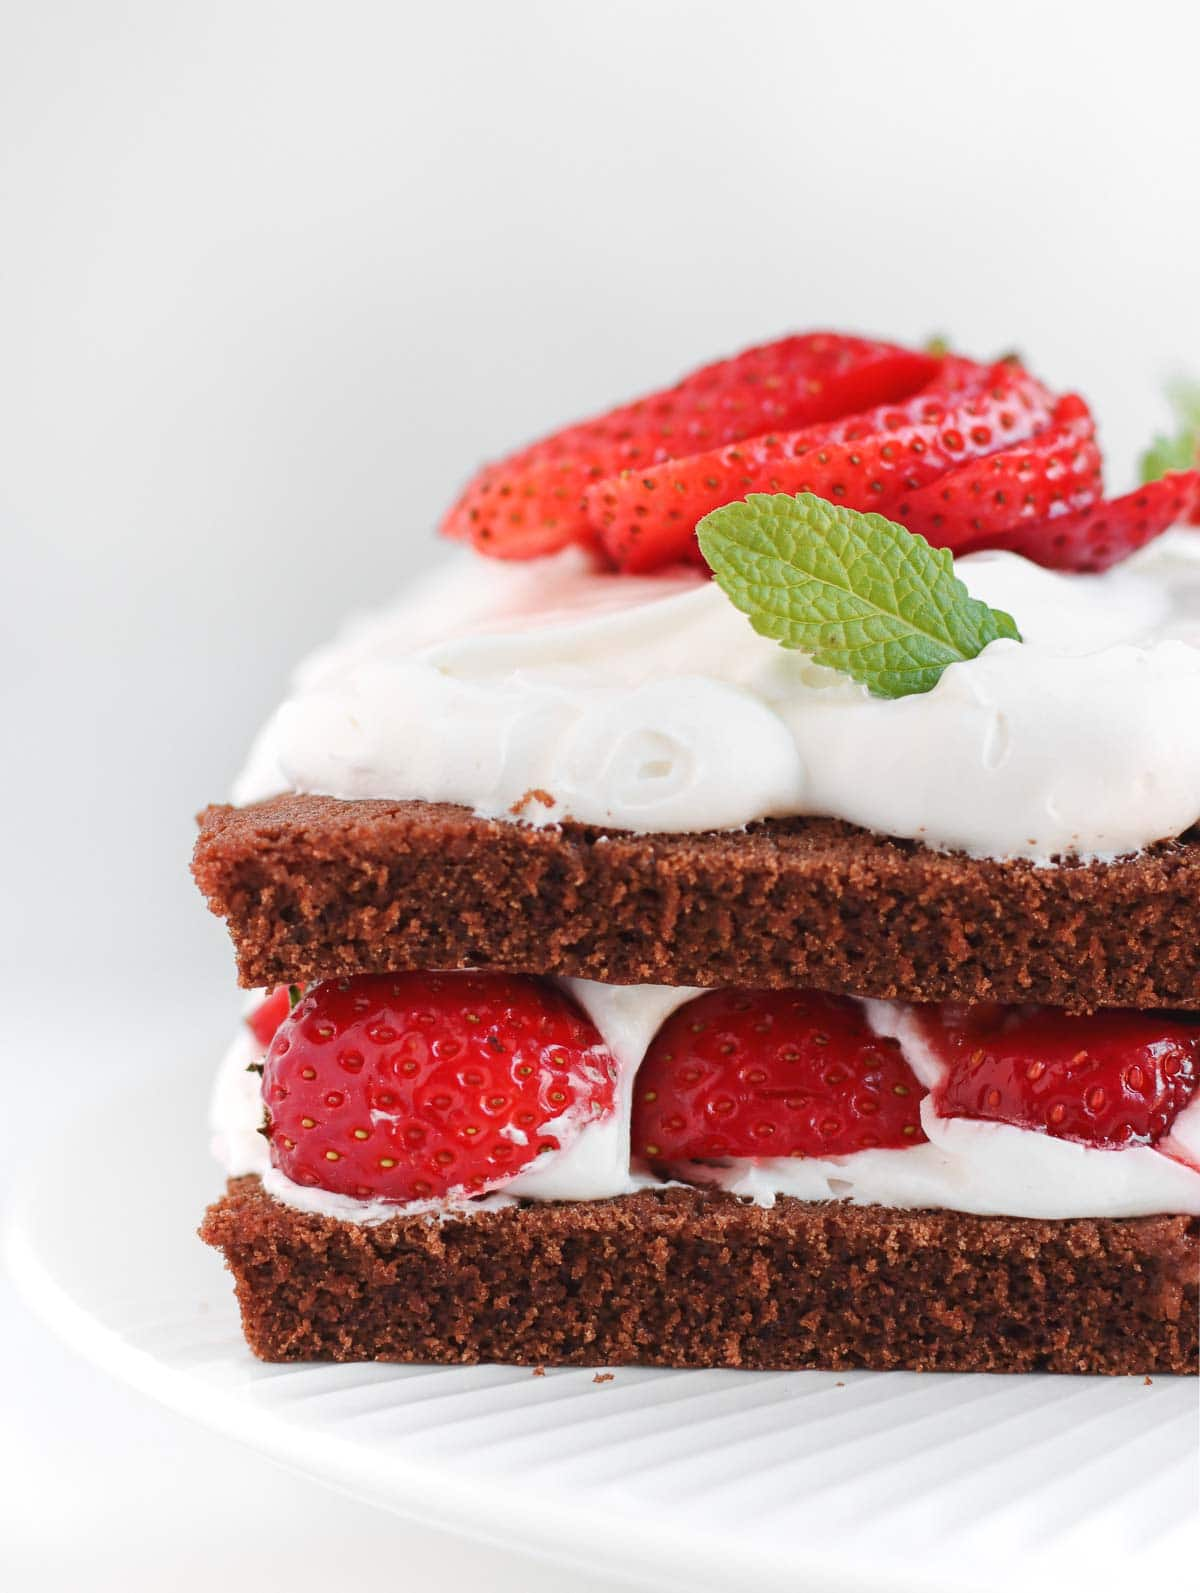 the edge of the chocolate and strawberry cake